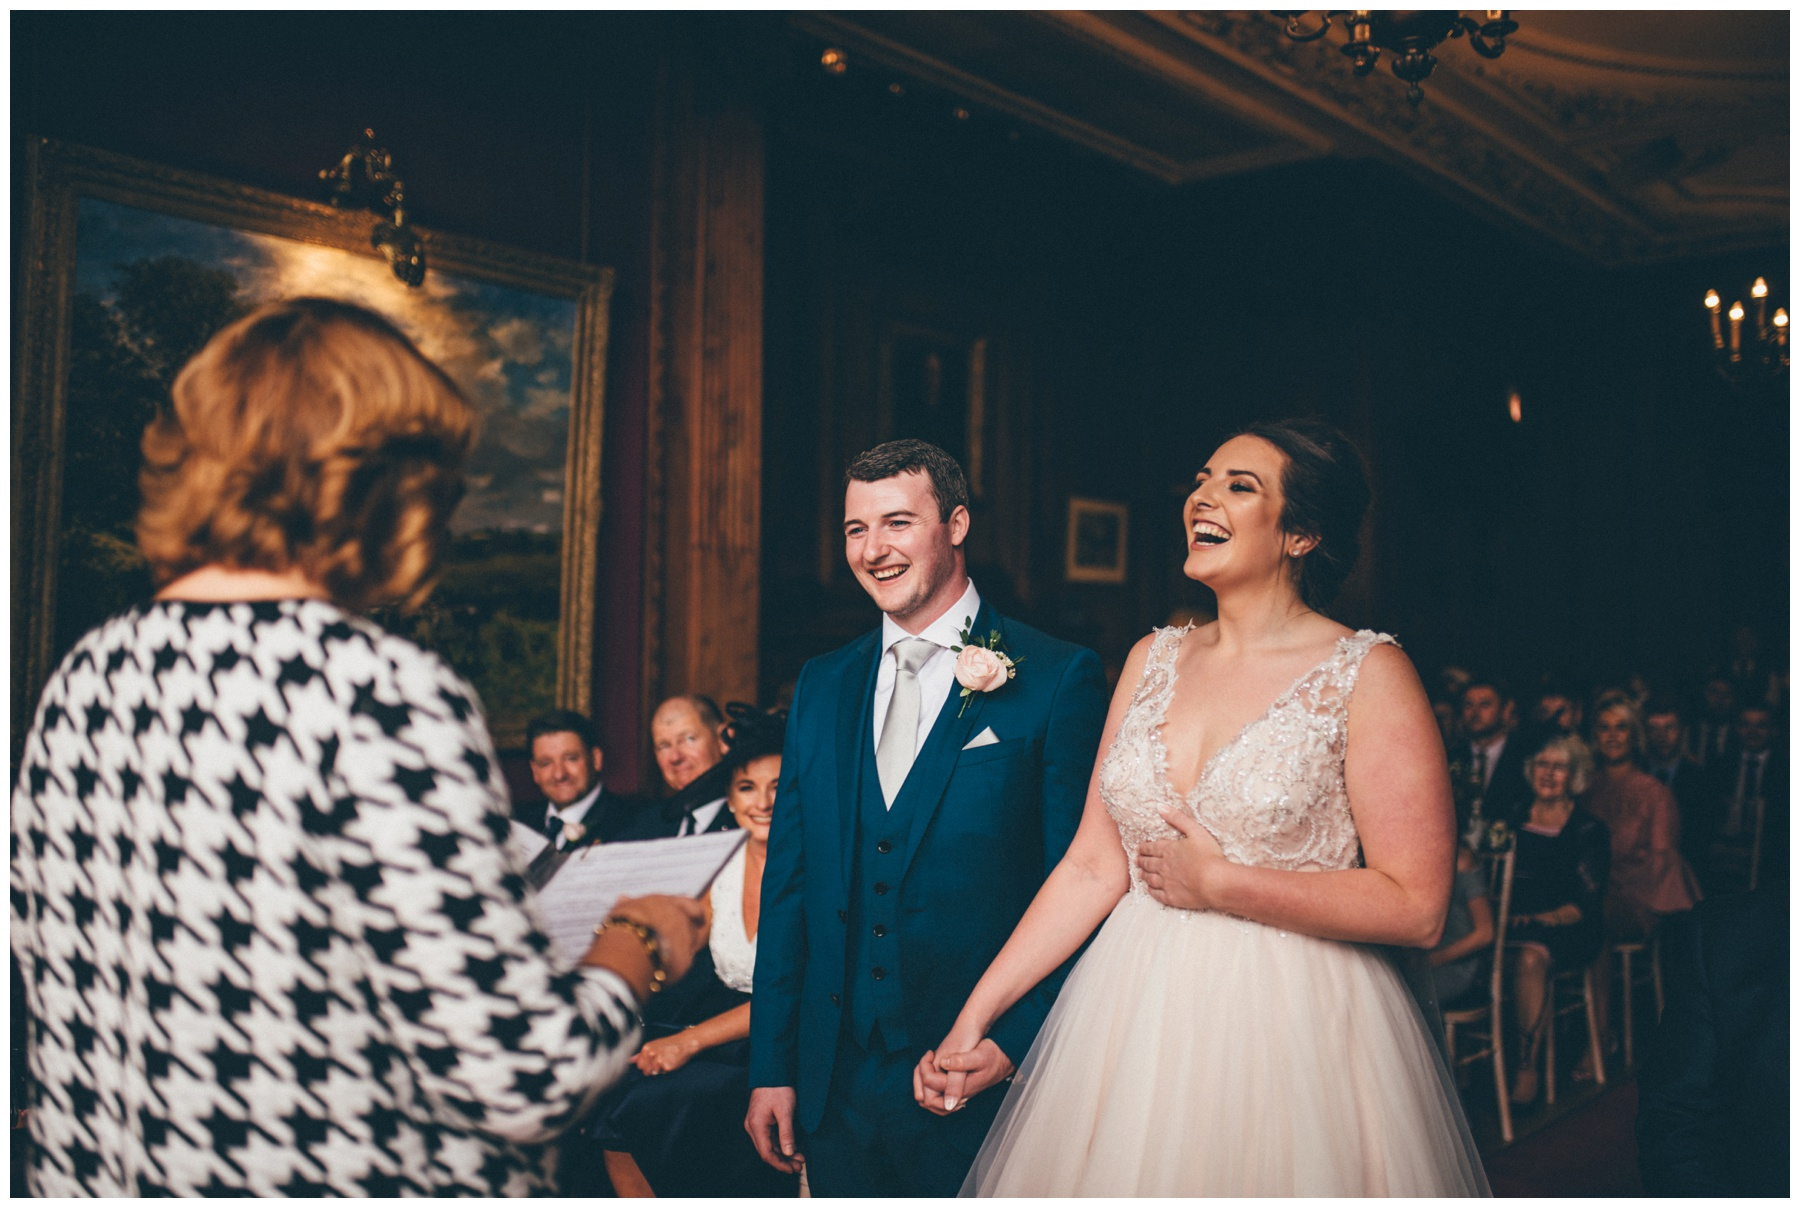 Bride and groom laugh during their wedding ceremony at Thornton Manor.